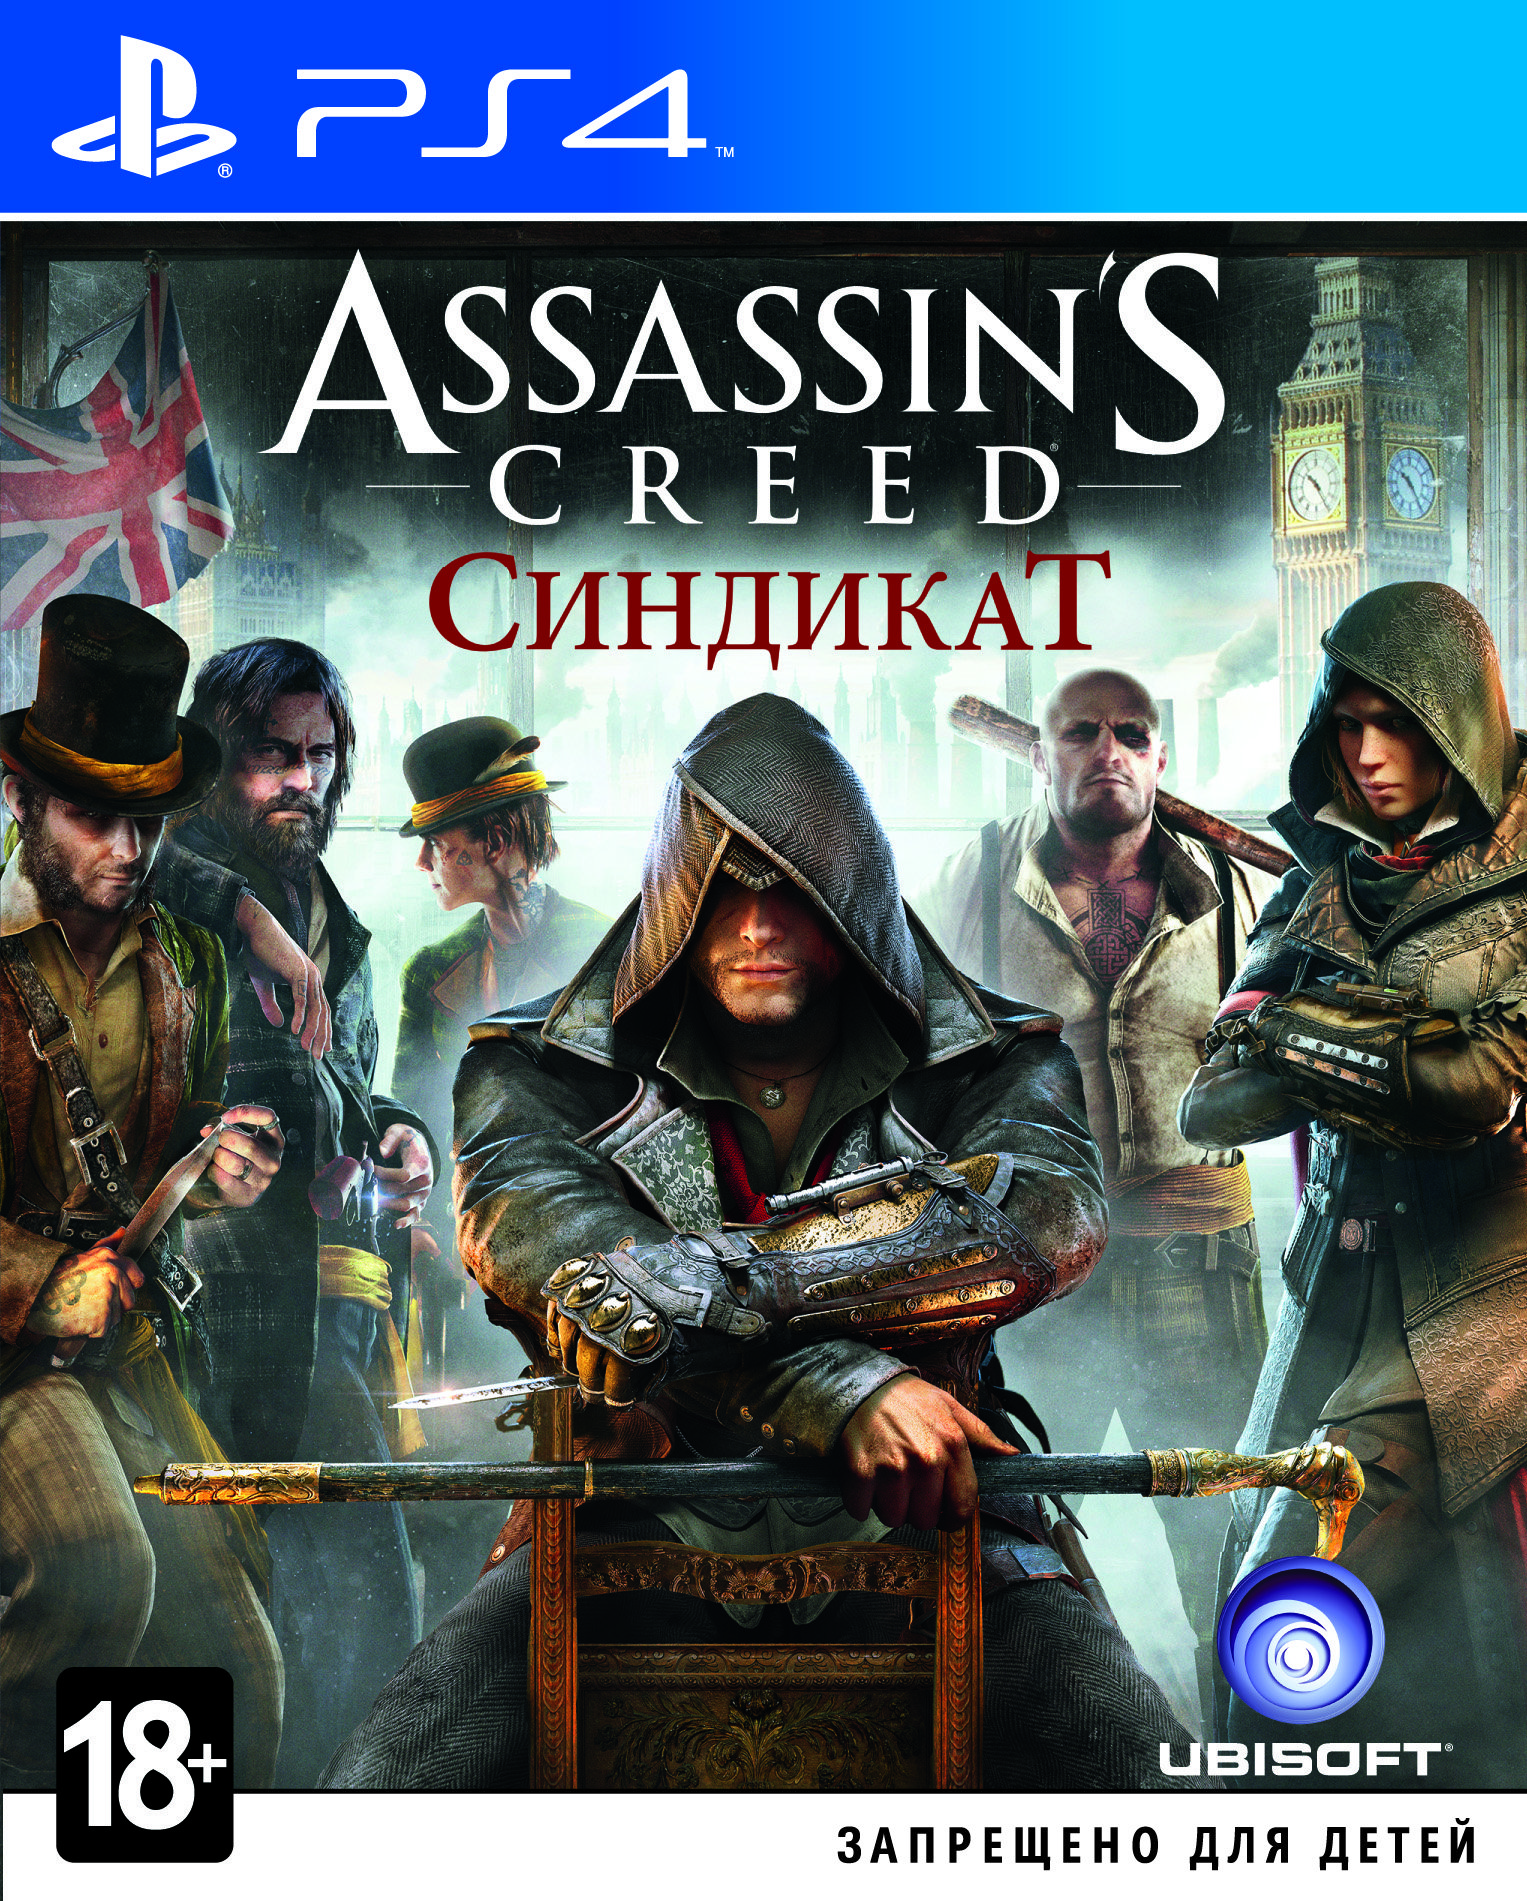 Assassin's Creed: Синдикат (PS4) (GameReplay)